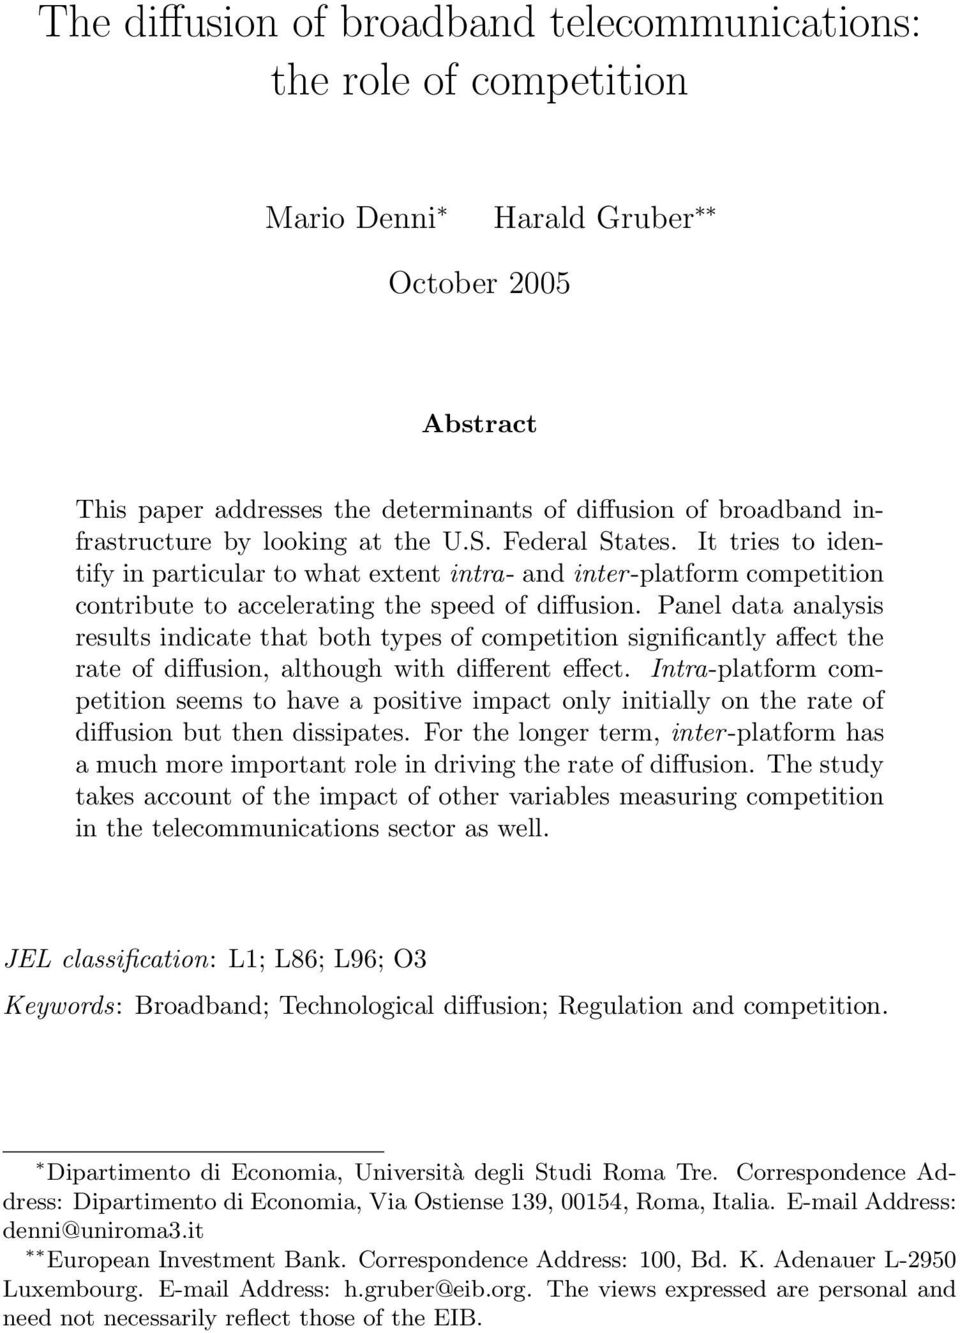 Panel data analysis results indicate that both types of competition significantly affect the rate of diffusion, although with different effect.